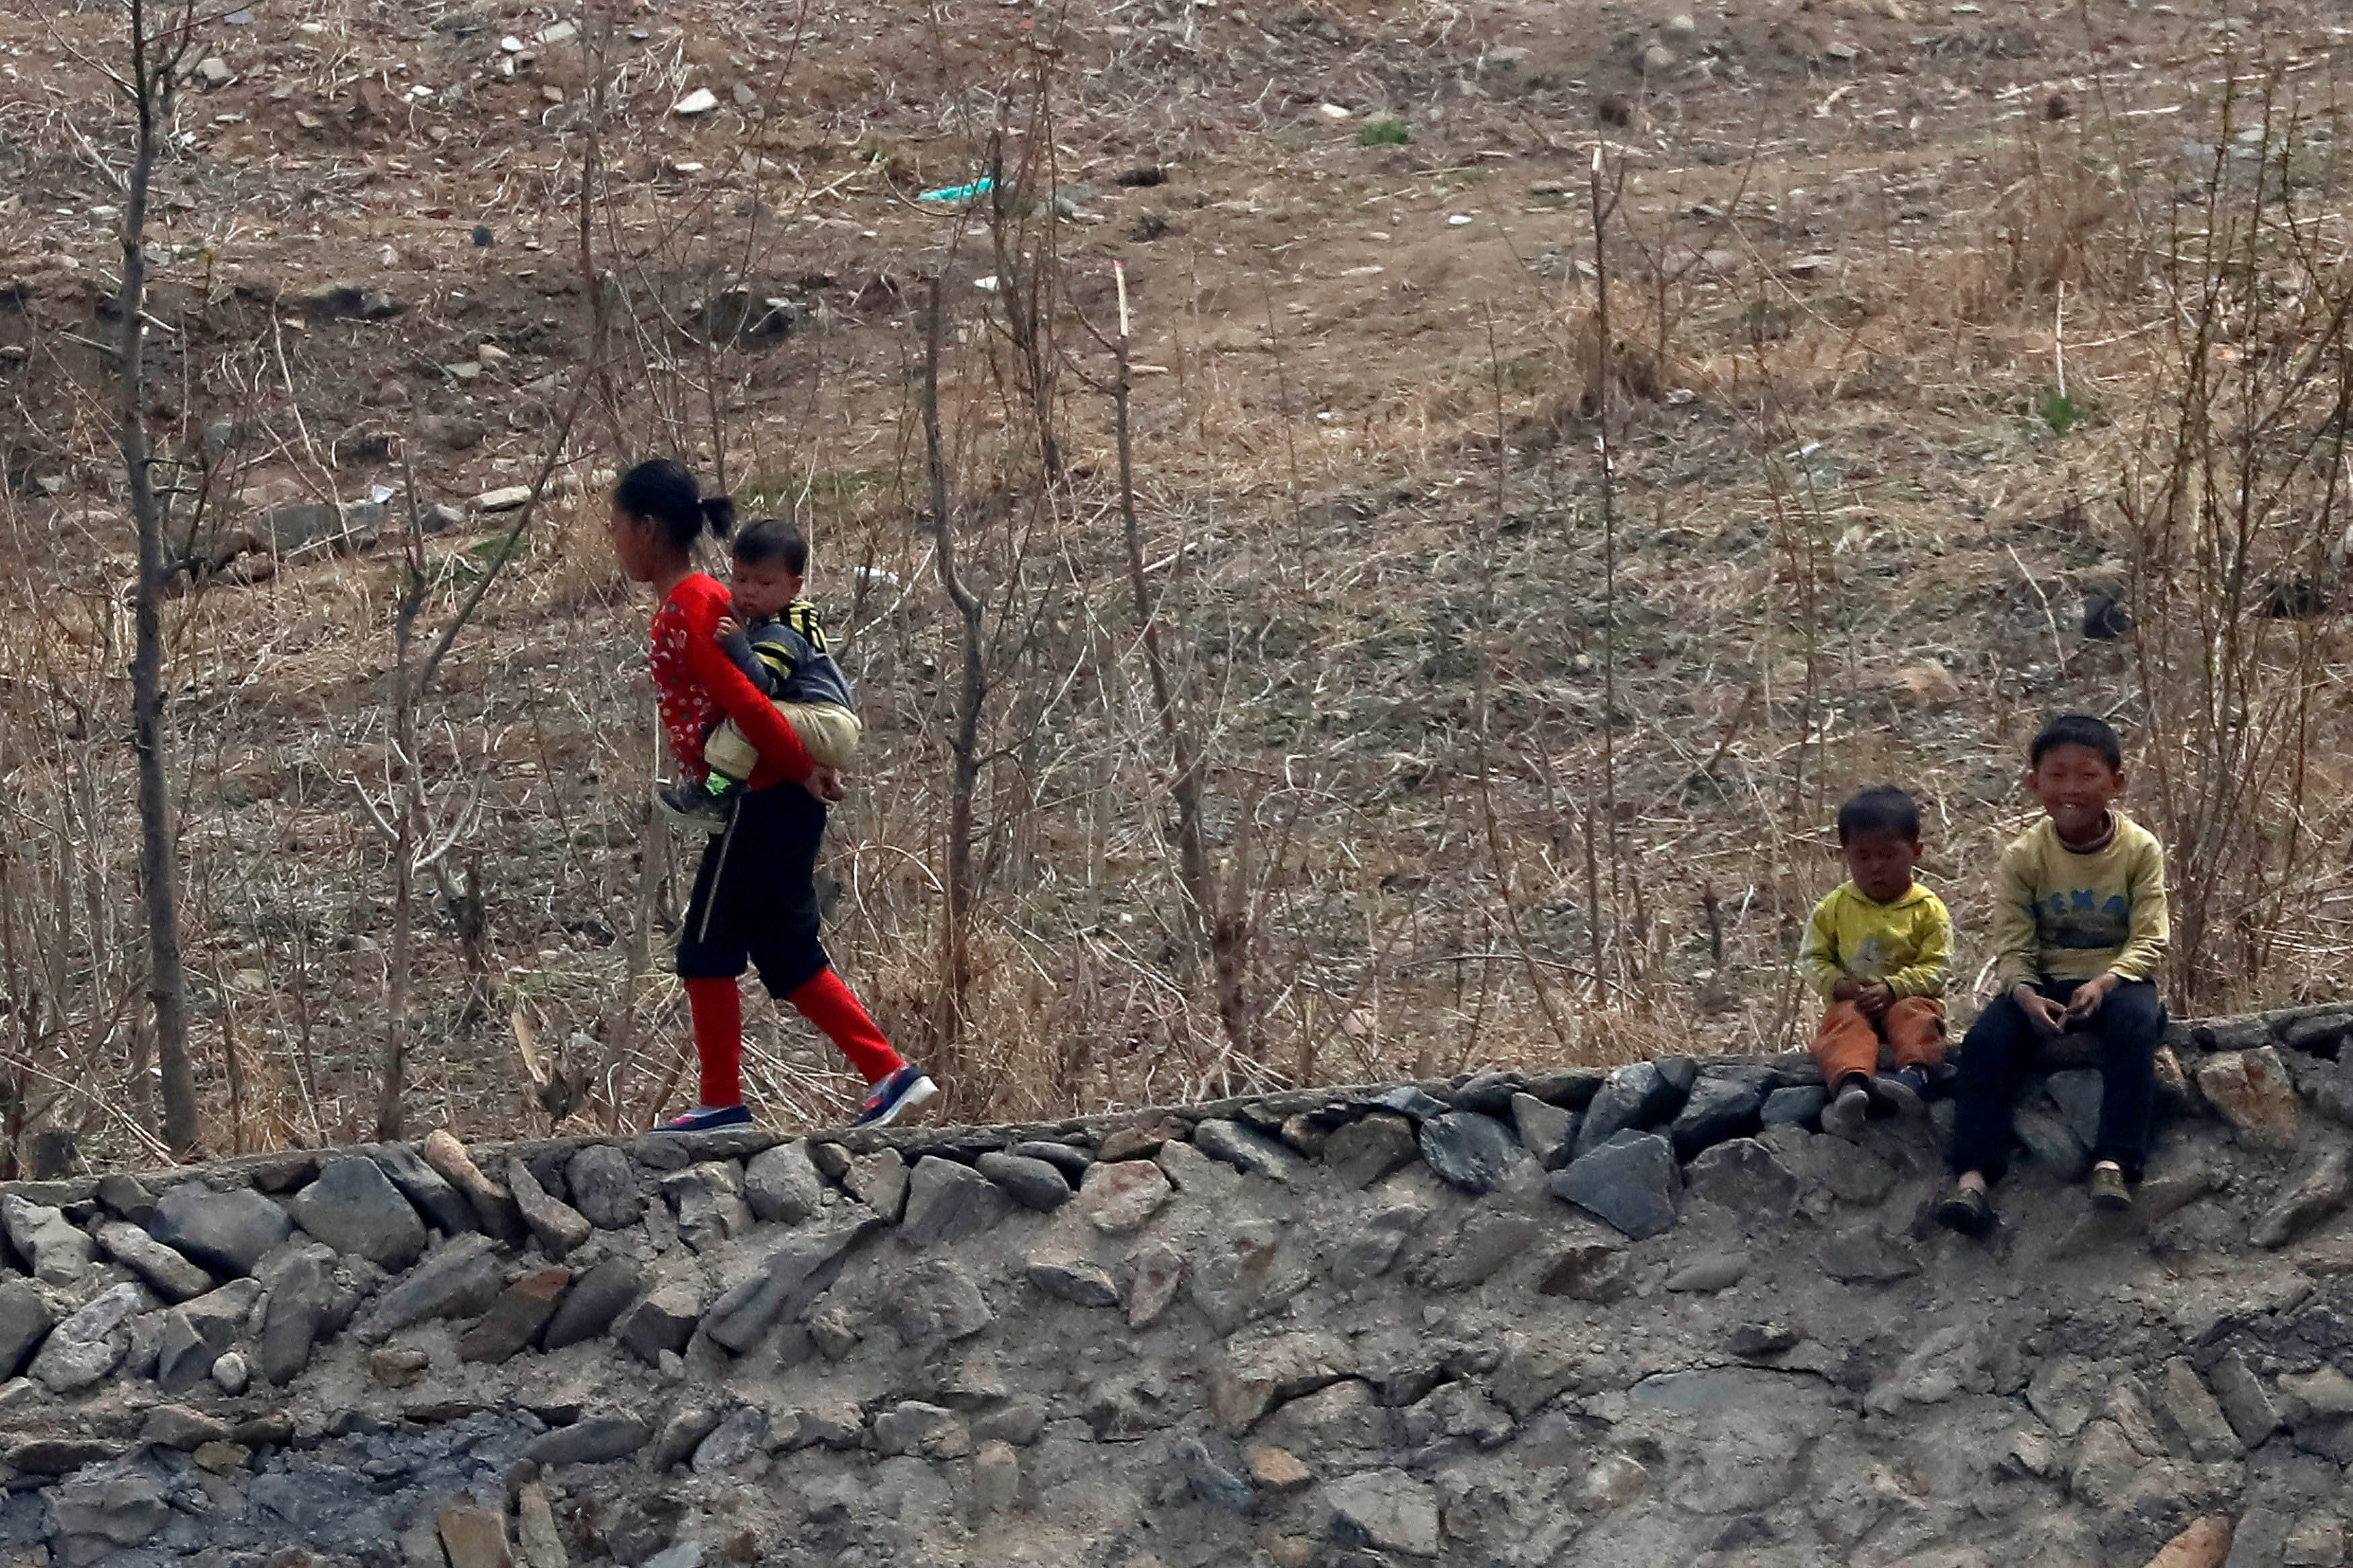 A North Korean girl carries an infant on her back while two children sit on a ledge on the banks of the Yalu River in Sinuiju, North Korea, on April 16, 2017. Photo: Reuters